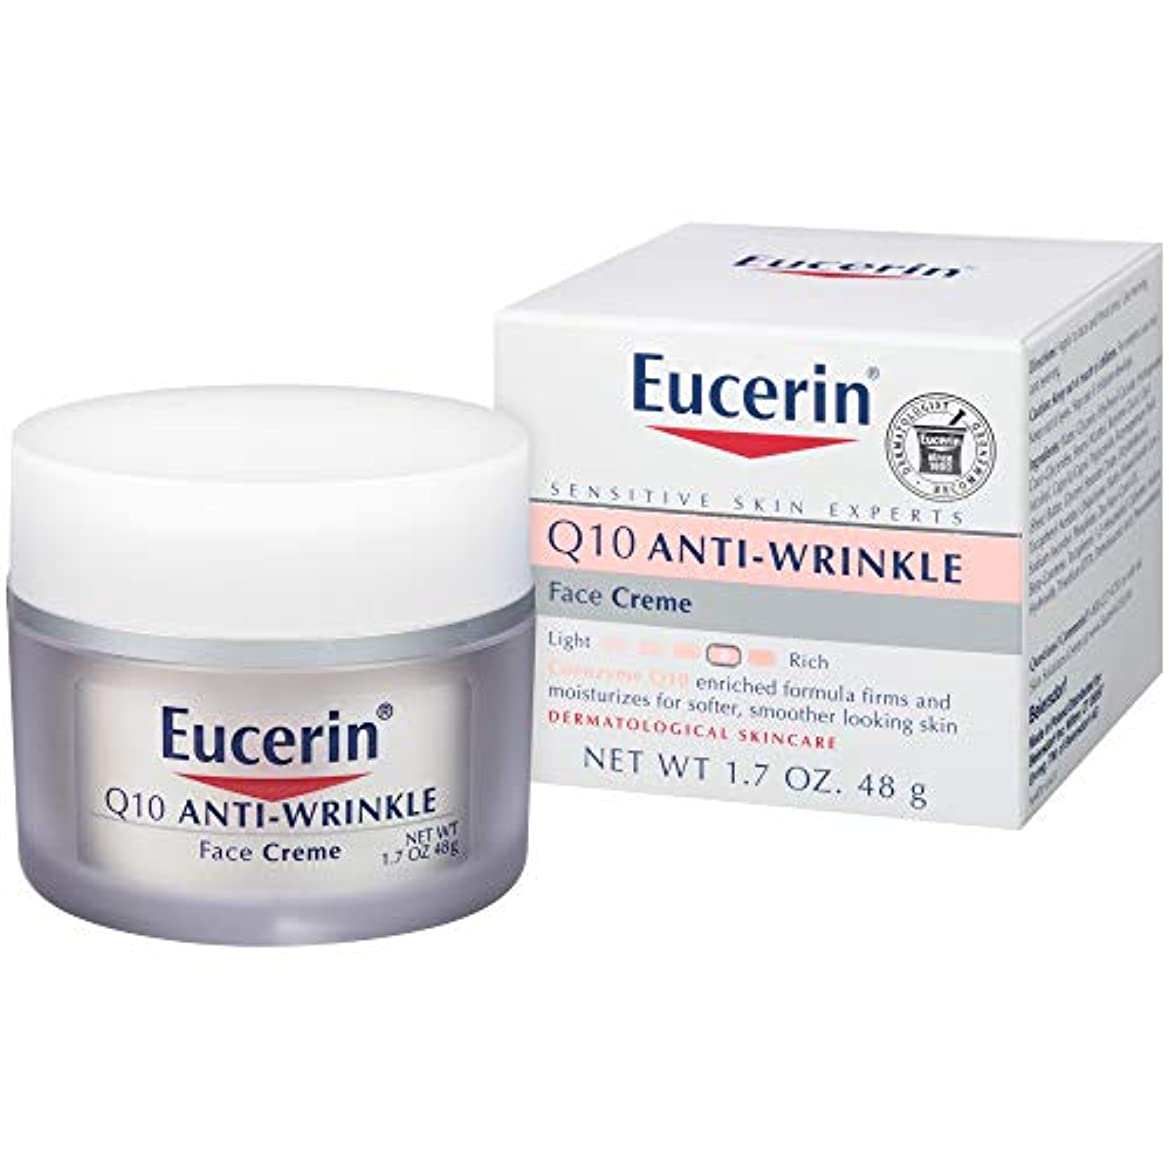 お別れヒープ結び目Eucerin Sensitive Facial Skin Q10 Anti-Wrinkle Sensitive Skin Creme 48g (並行輸入品)